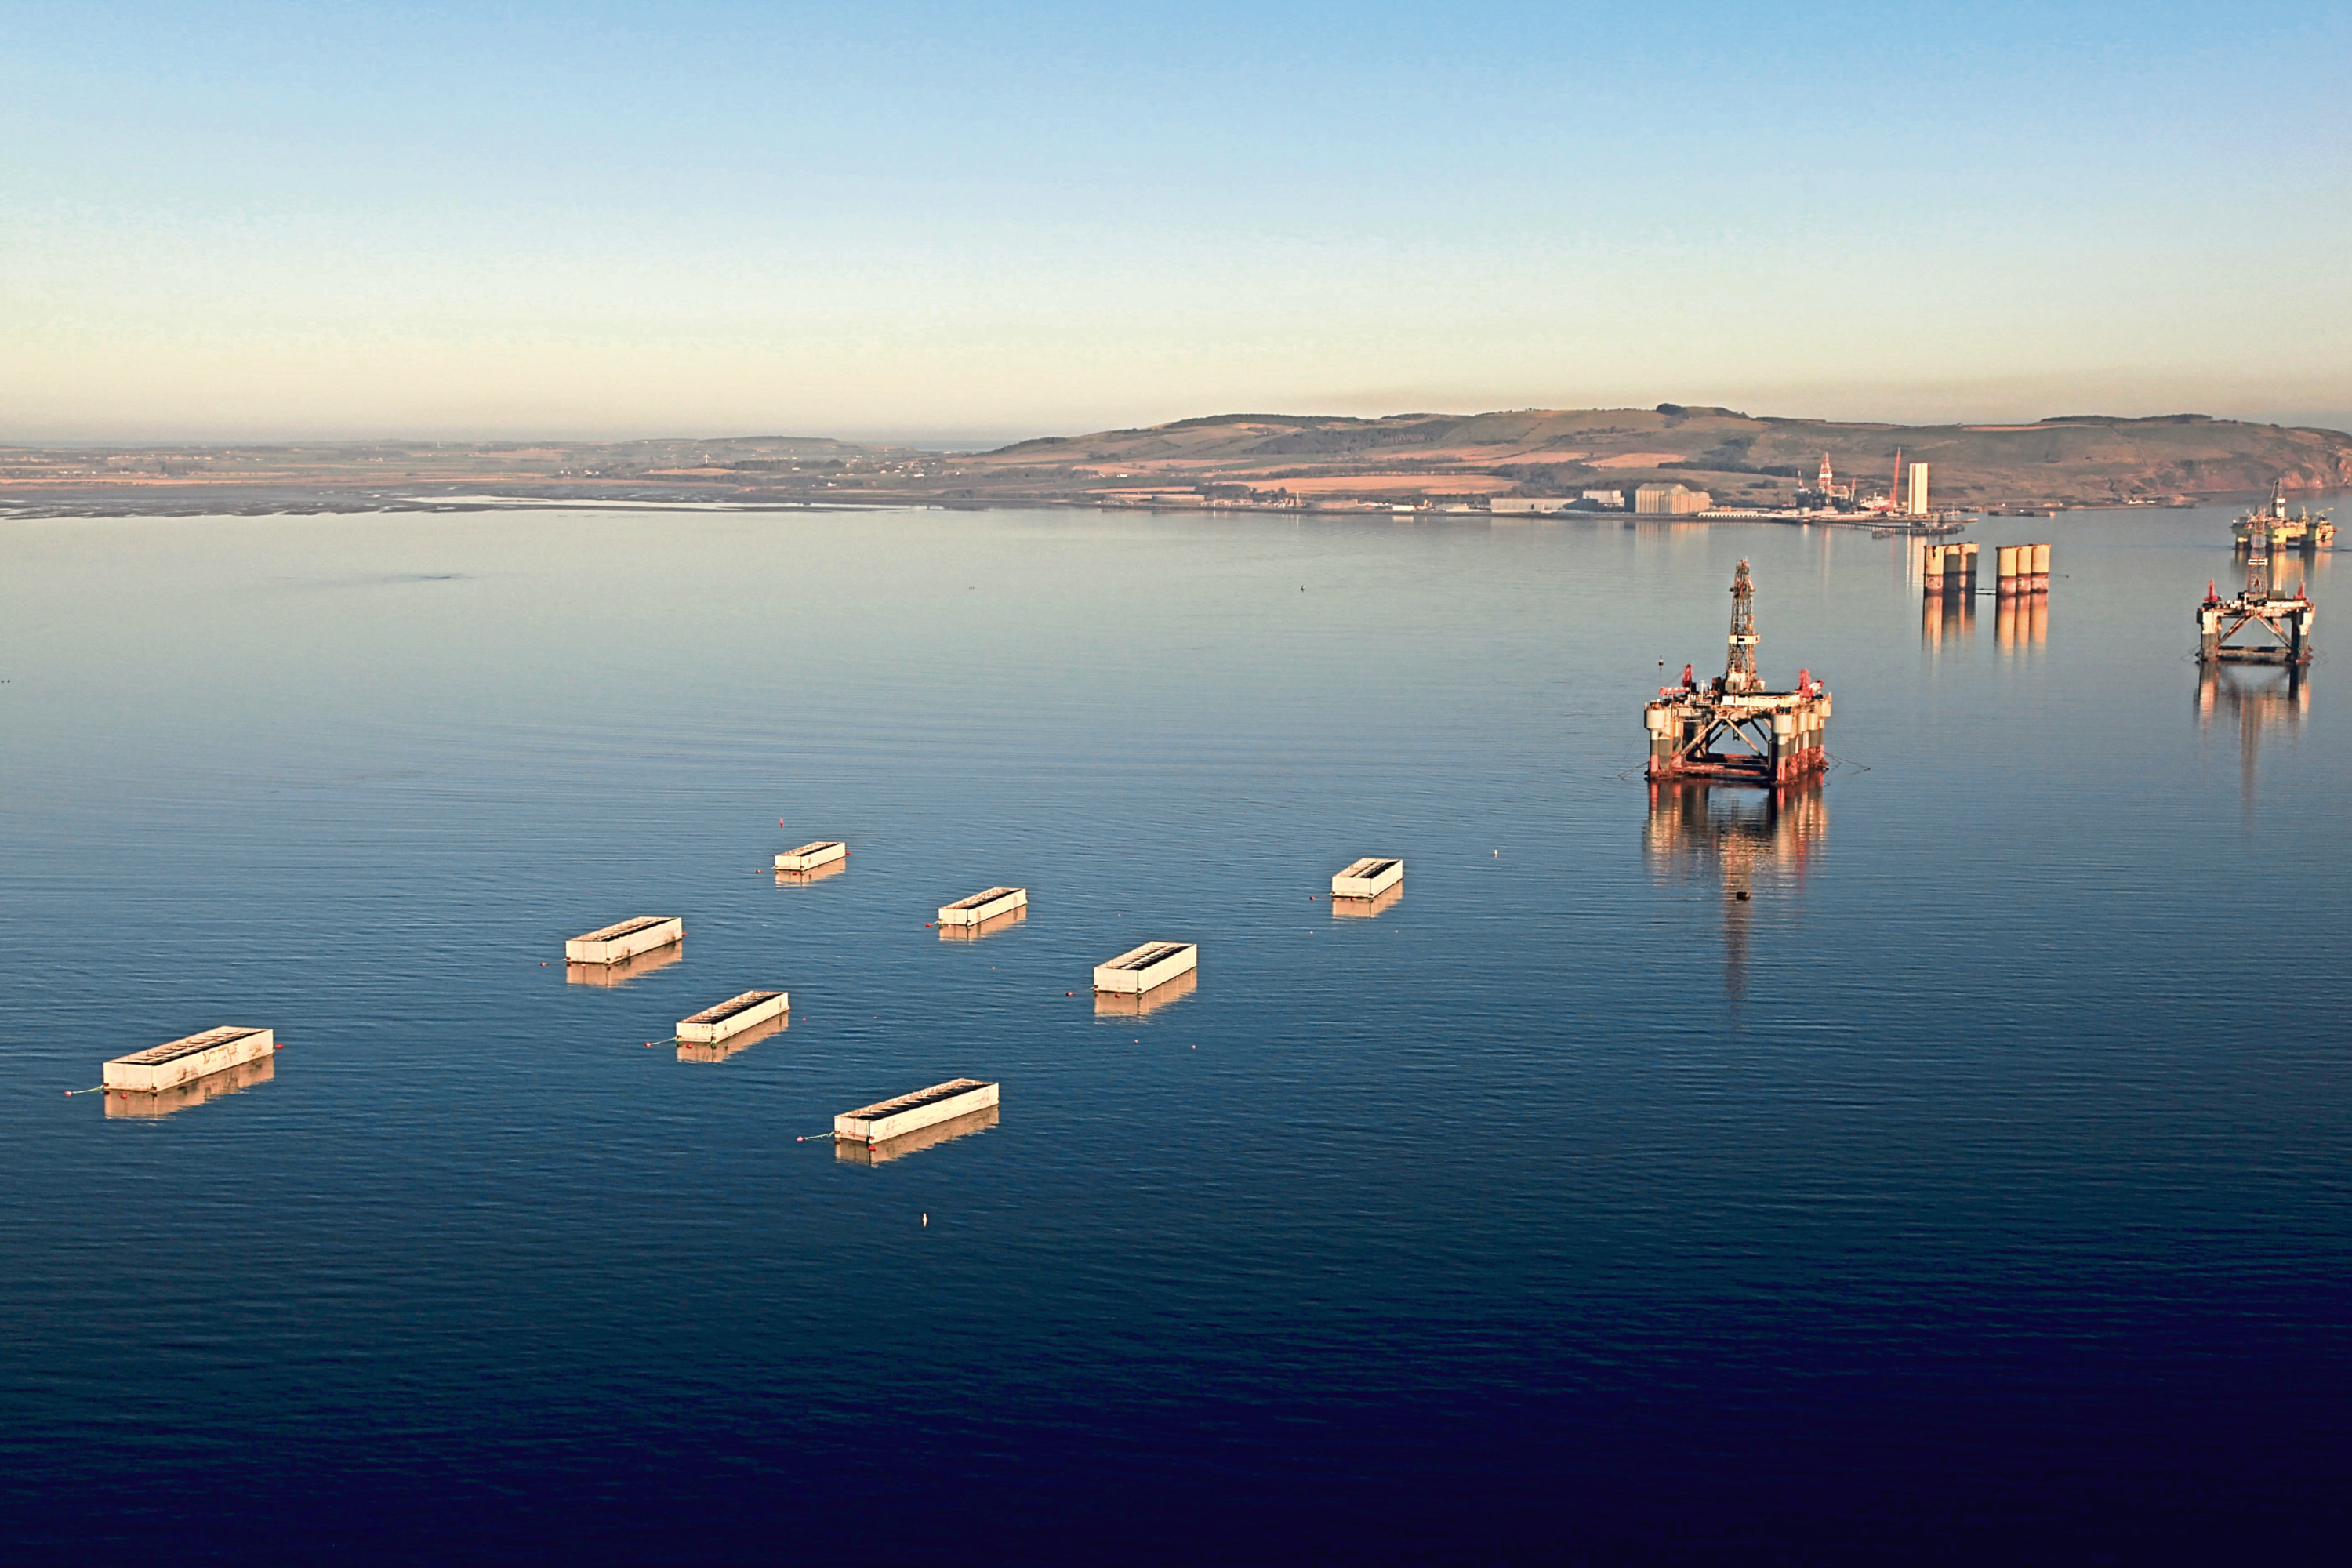 The caisson's were moved from the Cromarty Firth, where they were being stored ahead of their journey to Aberdeen